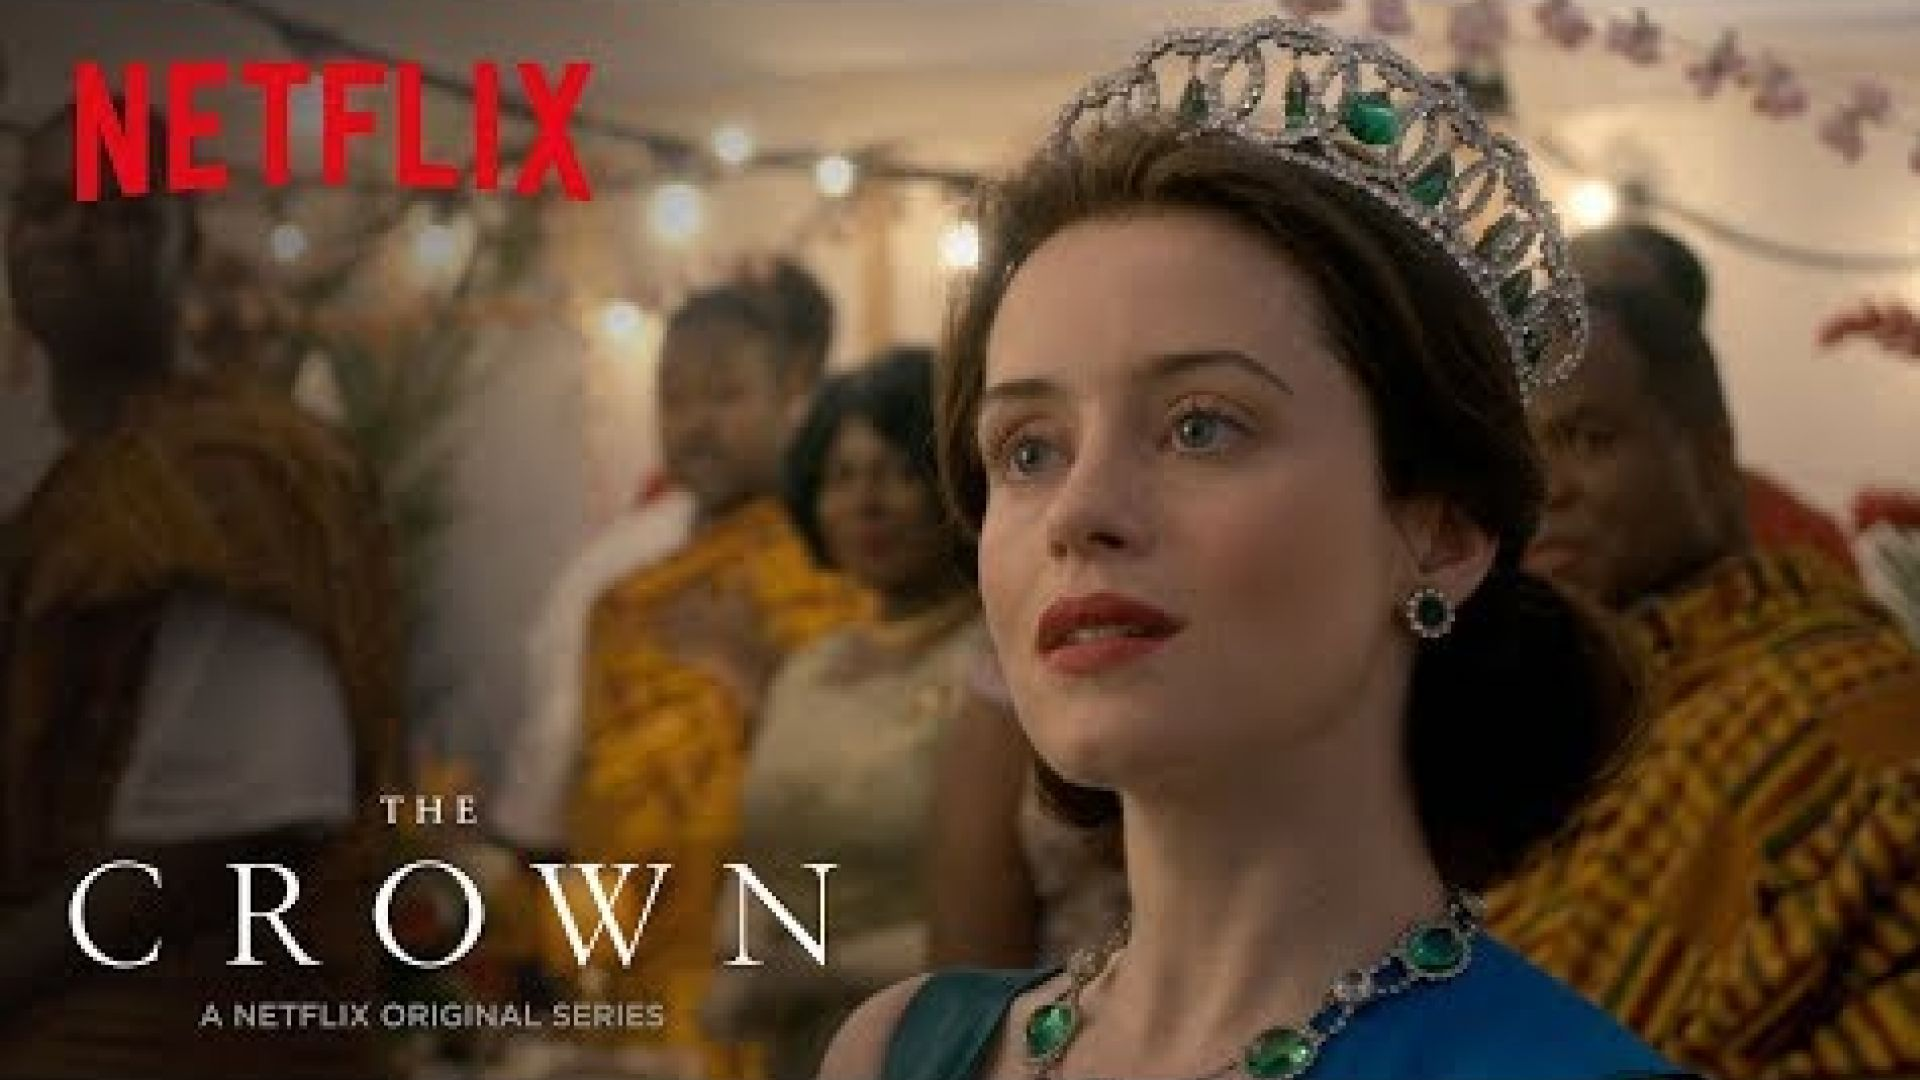 The Crown: Season 2 - Trailer